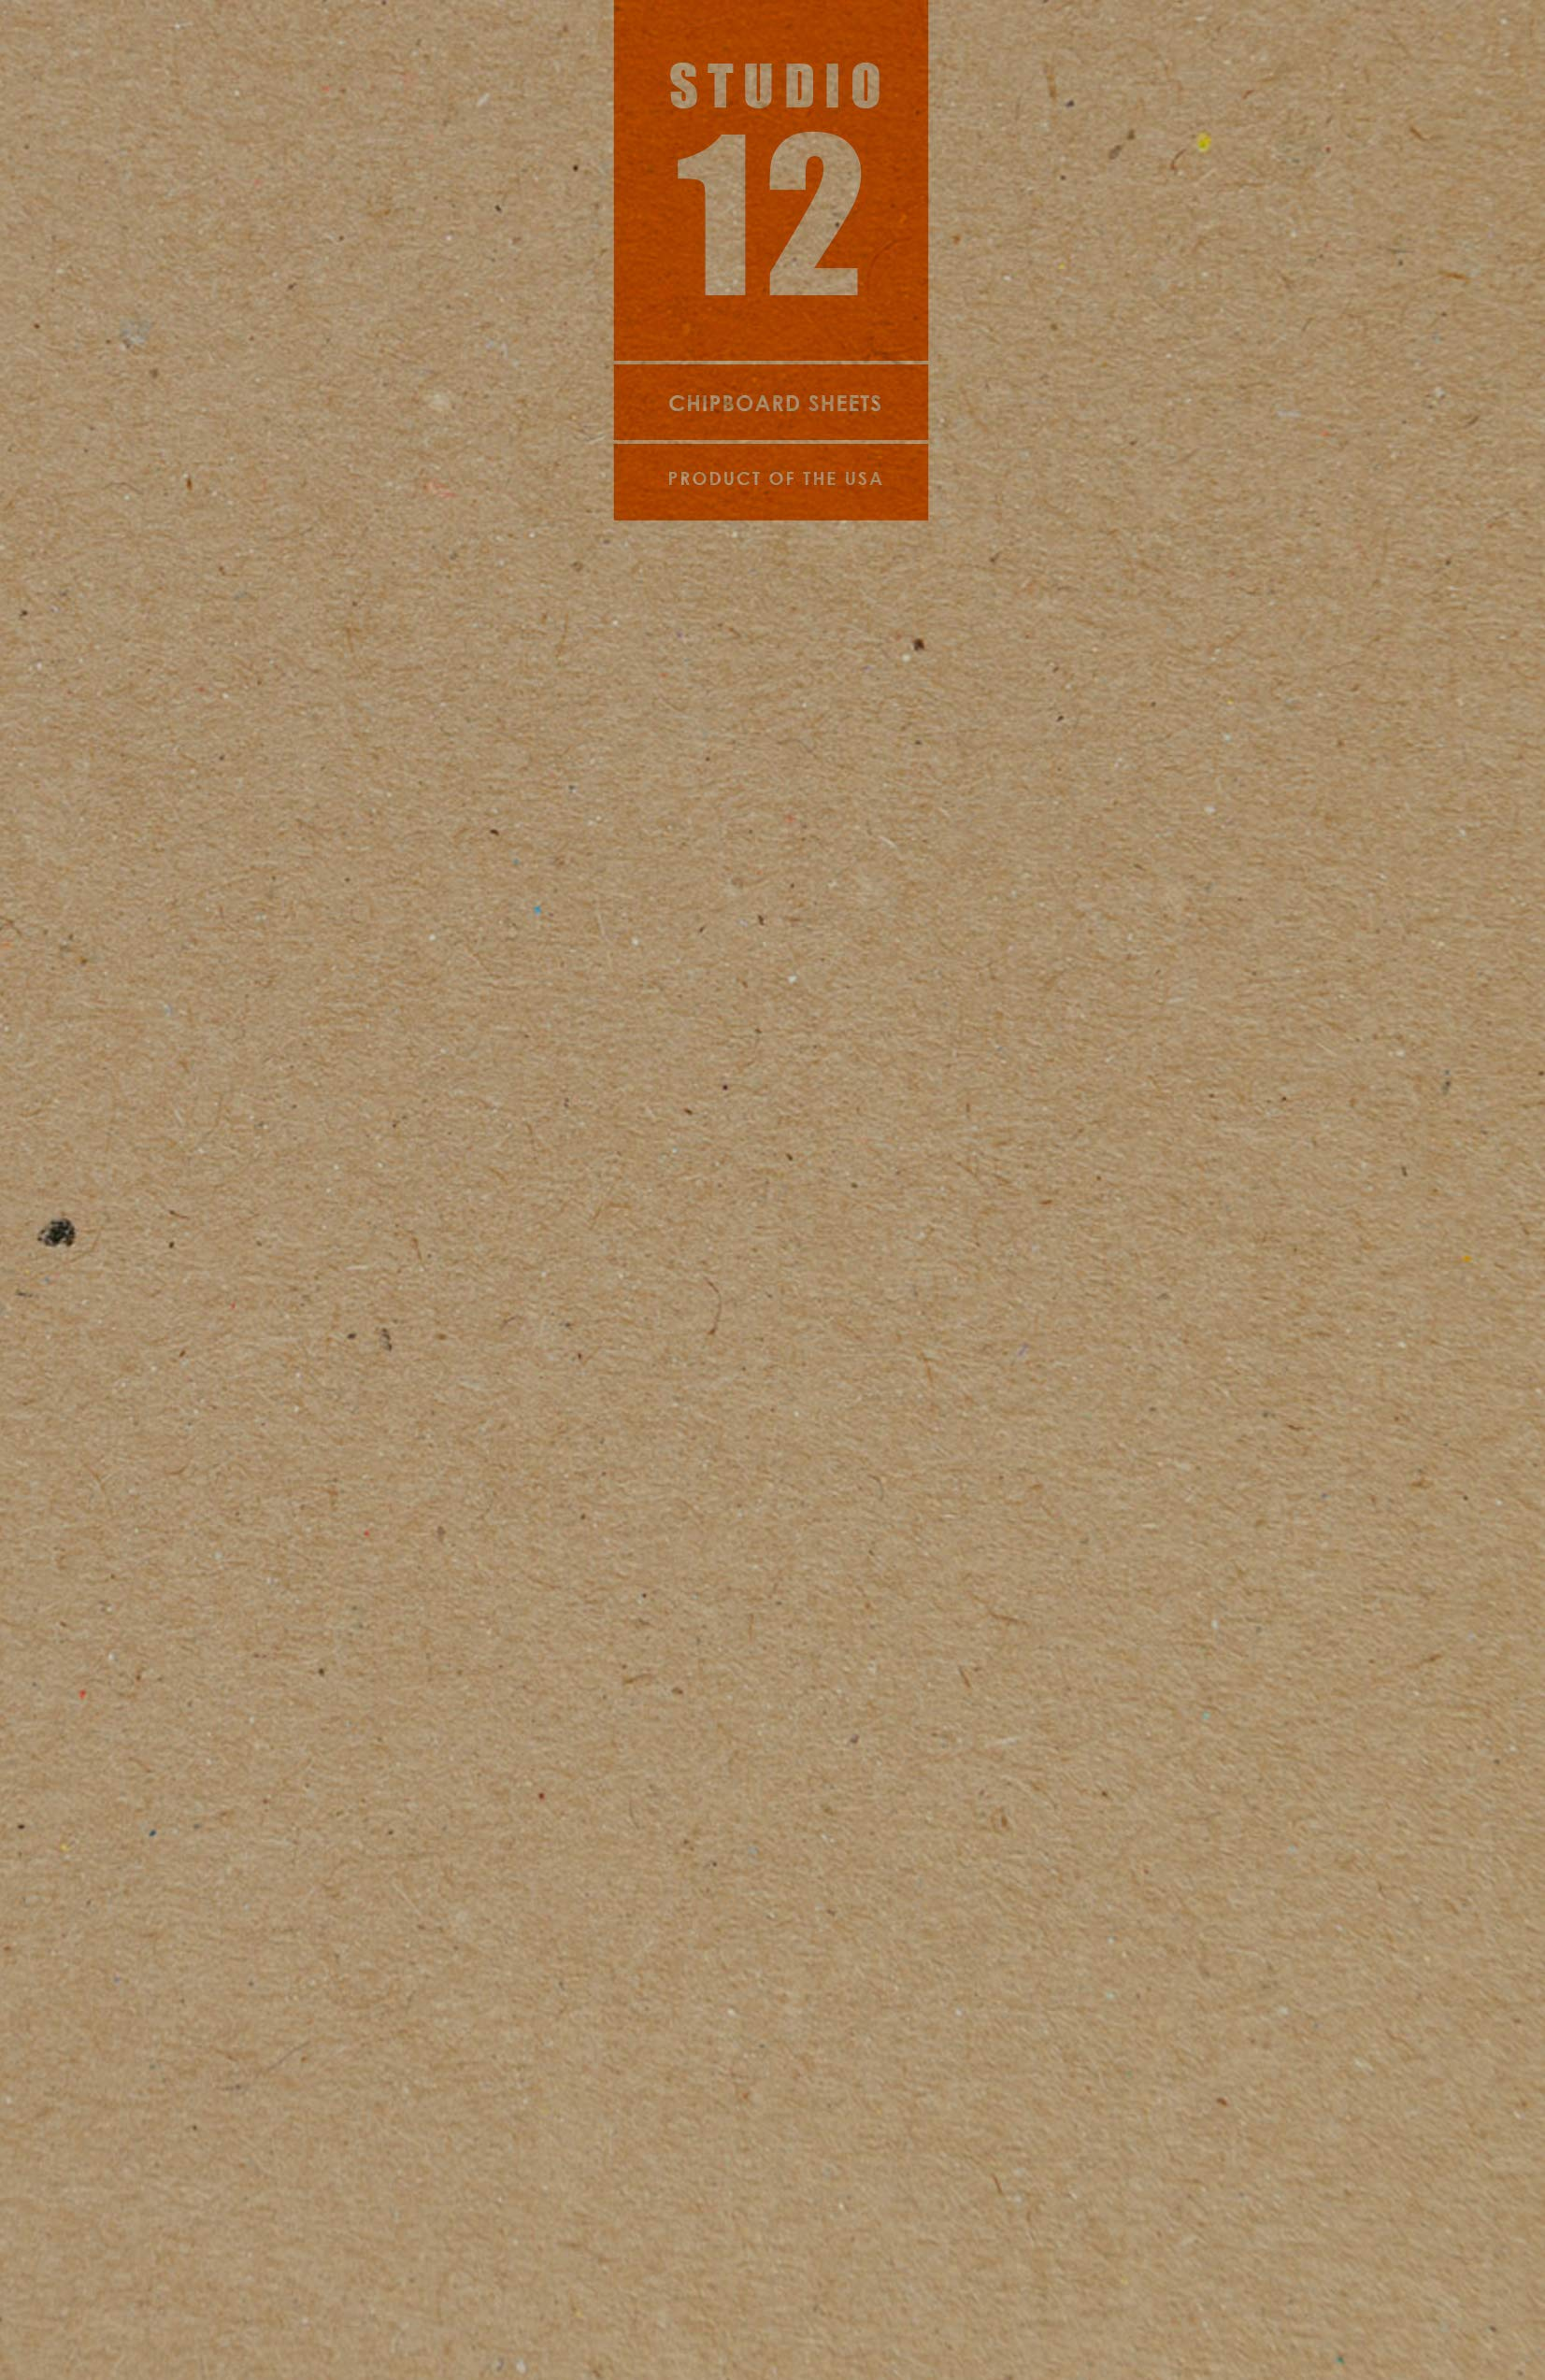 Studio 12 Chipboard Sheets. Kraft Brown. Medium. Great for Model Building, Scrap-Booking, Creative Projects and Protecting Valuable Photos and documents. (11'' x 17'' Sheets) (50 Sheets)